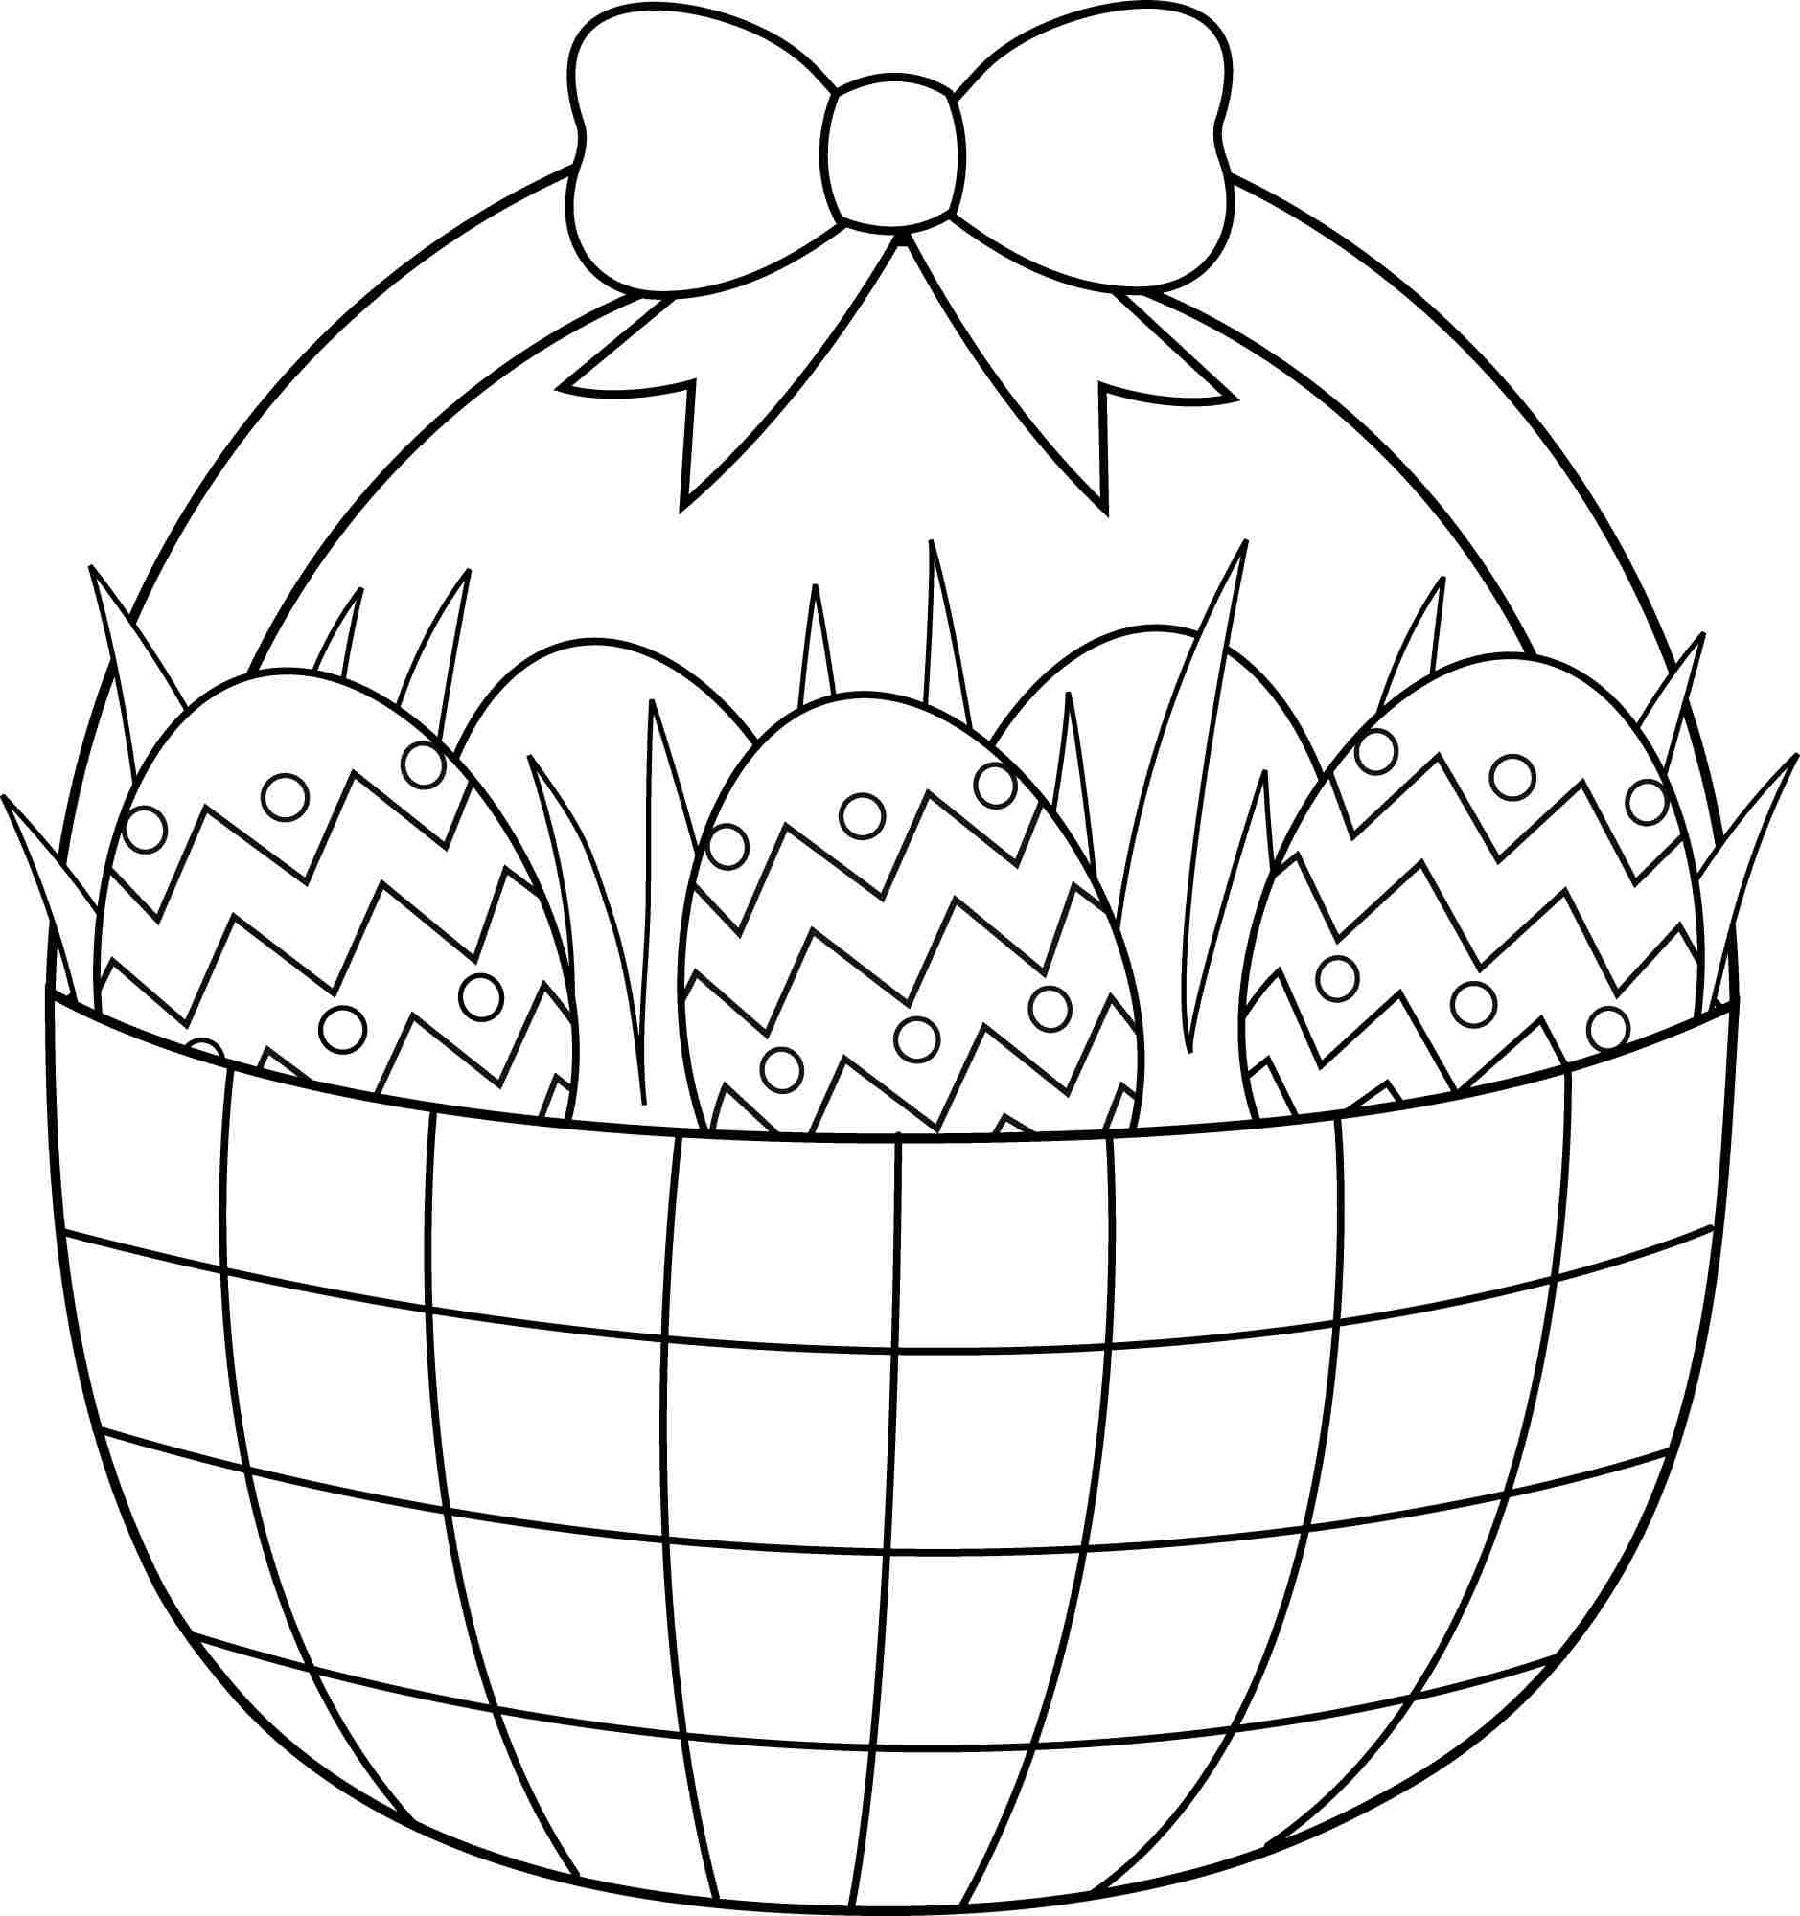 Free Printable Alphabet Letter Worksheets Coloring Pages